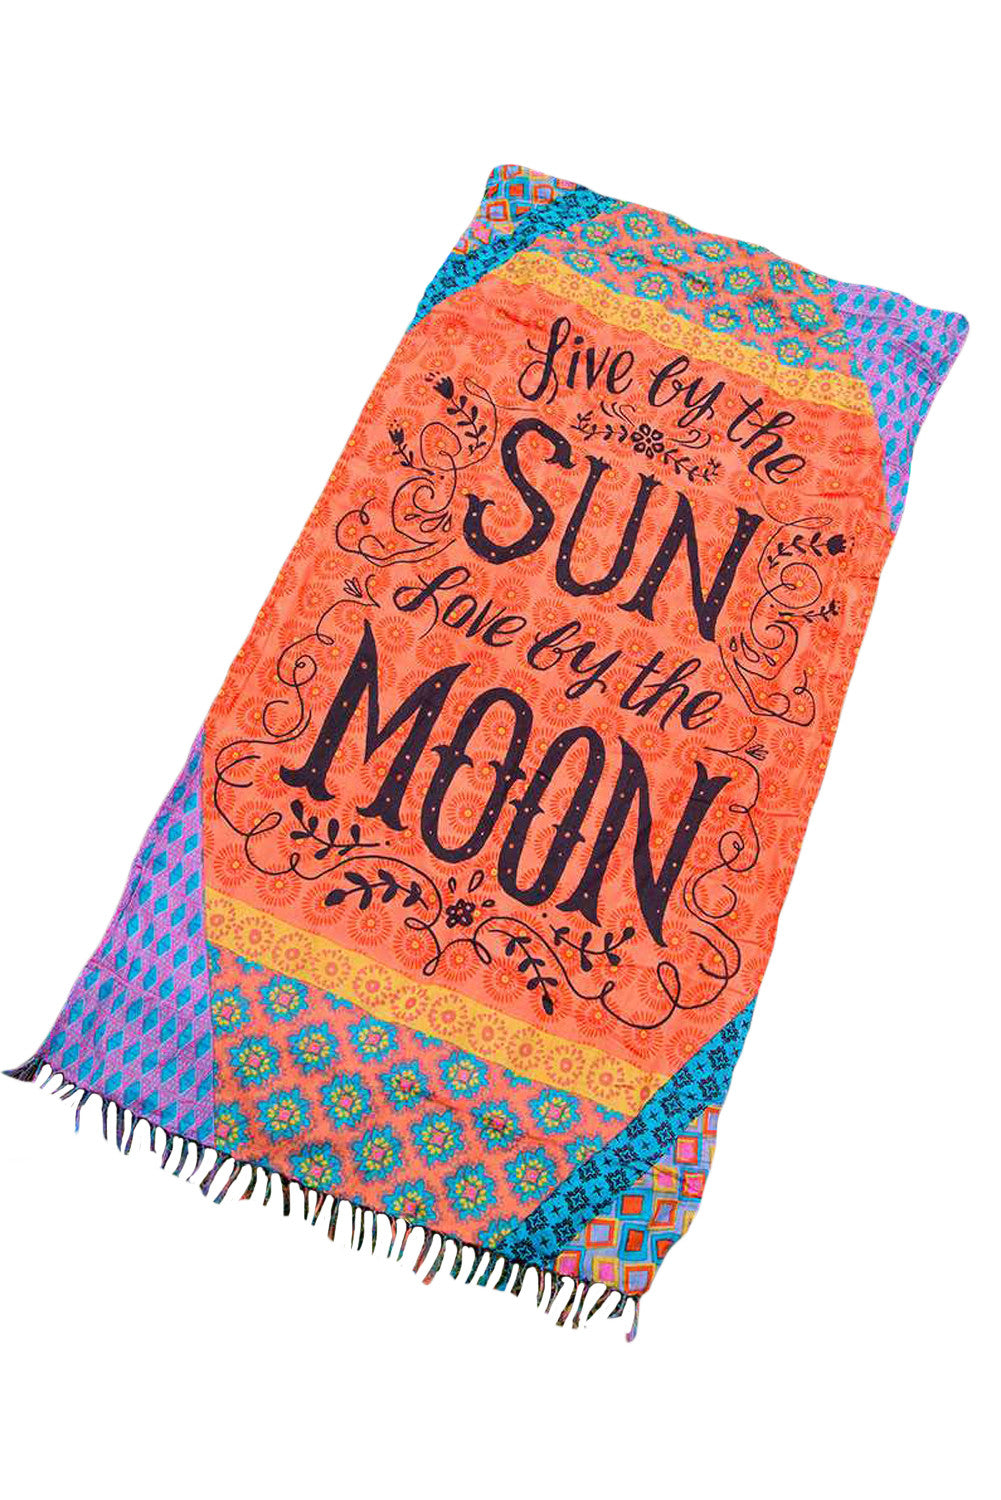 Chicloth Enjoy Sun and Moon Beach Towel Blanket-cover up-Chicloth